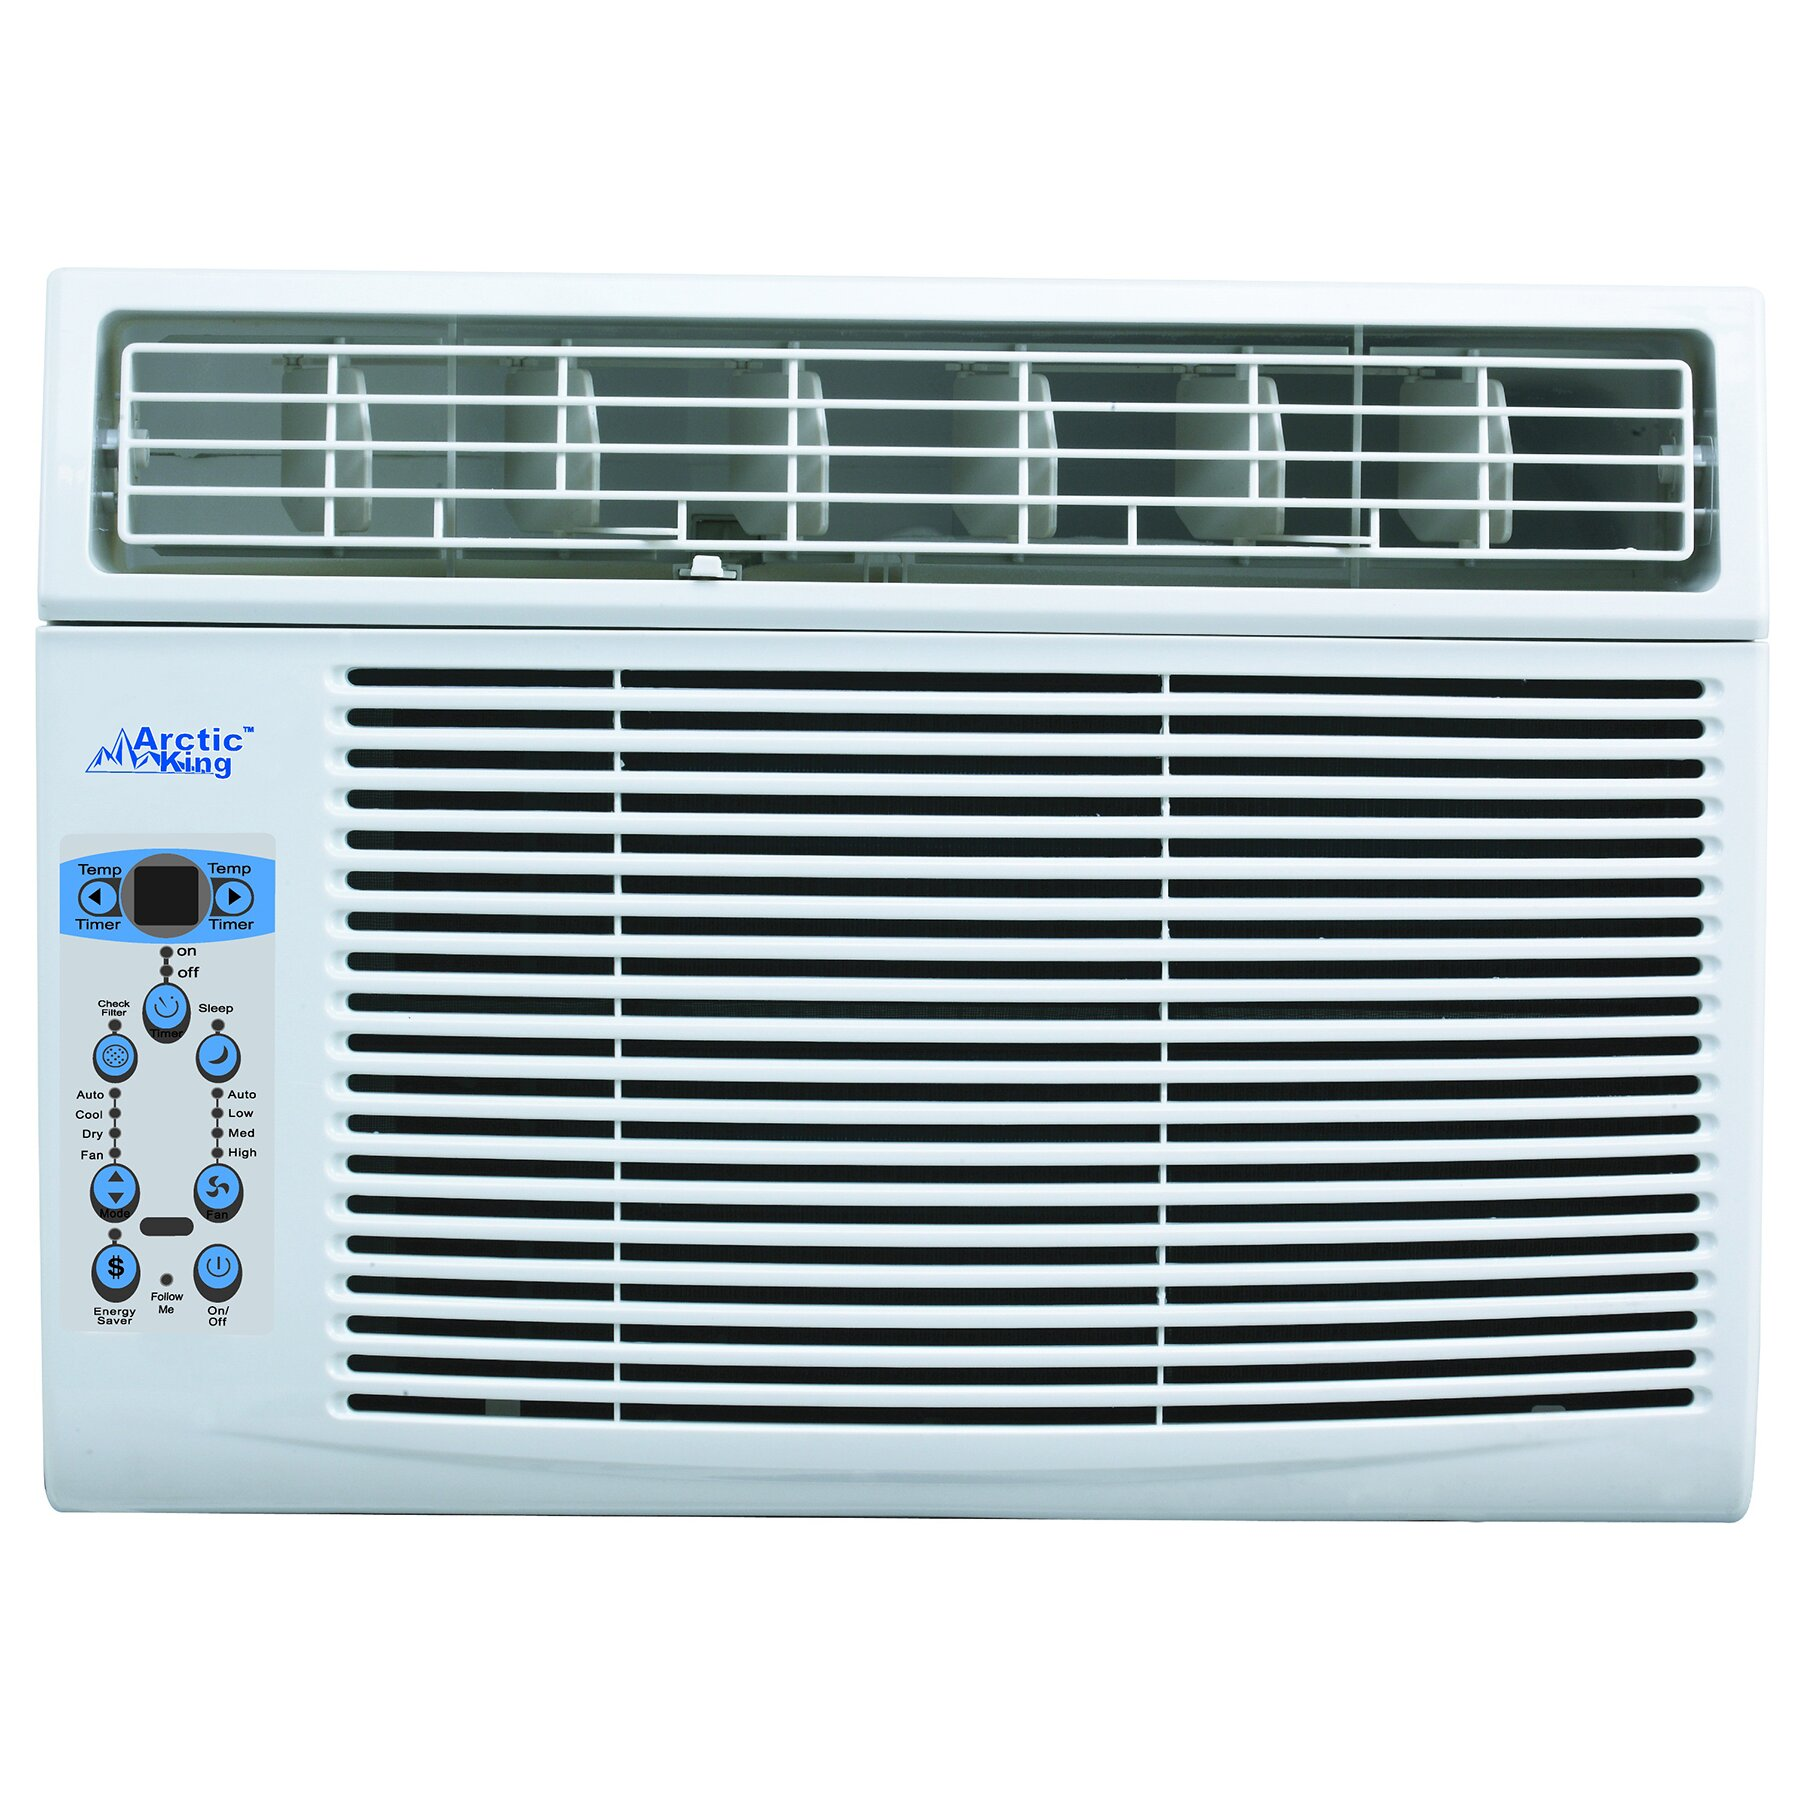 Arctic king window 12 000 btu air conditioner with remote for 12k btu window air conditioner